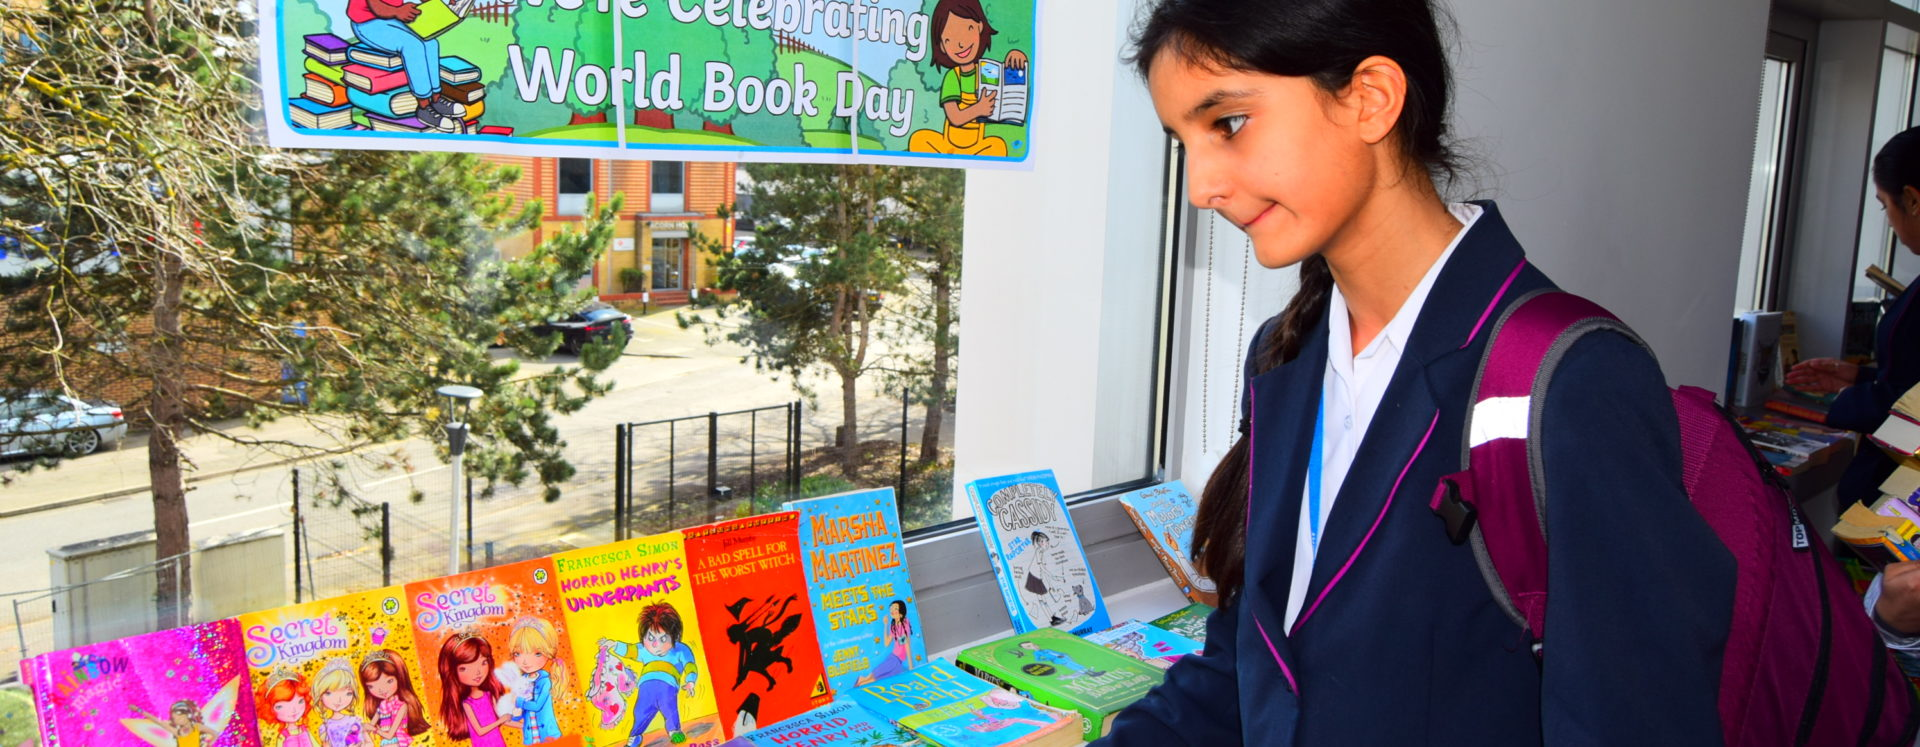 Writers' visit to celebrate World Book Day